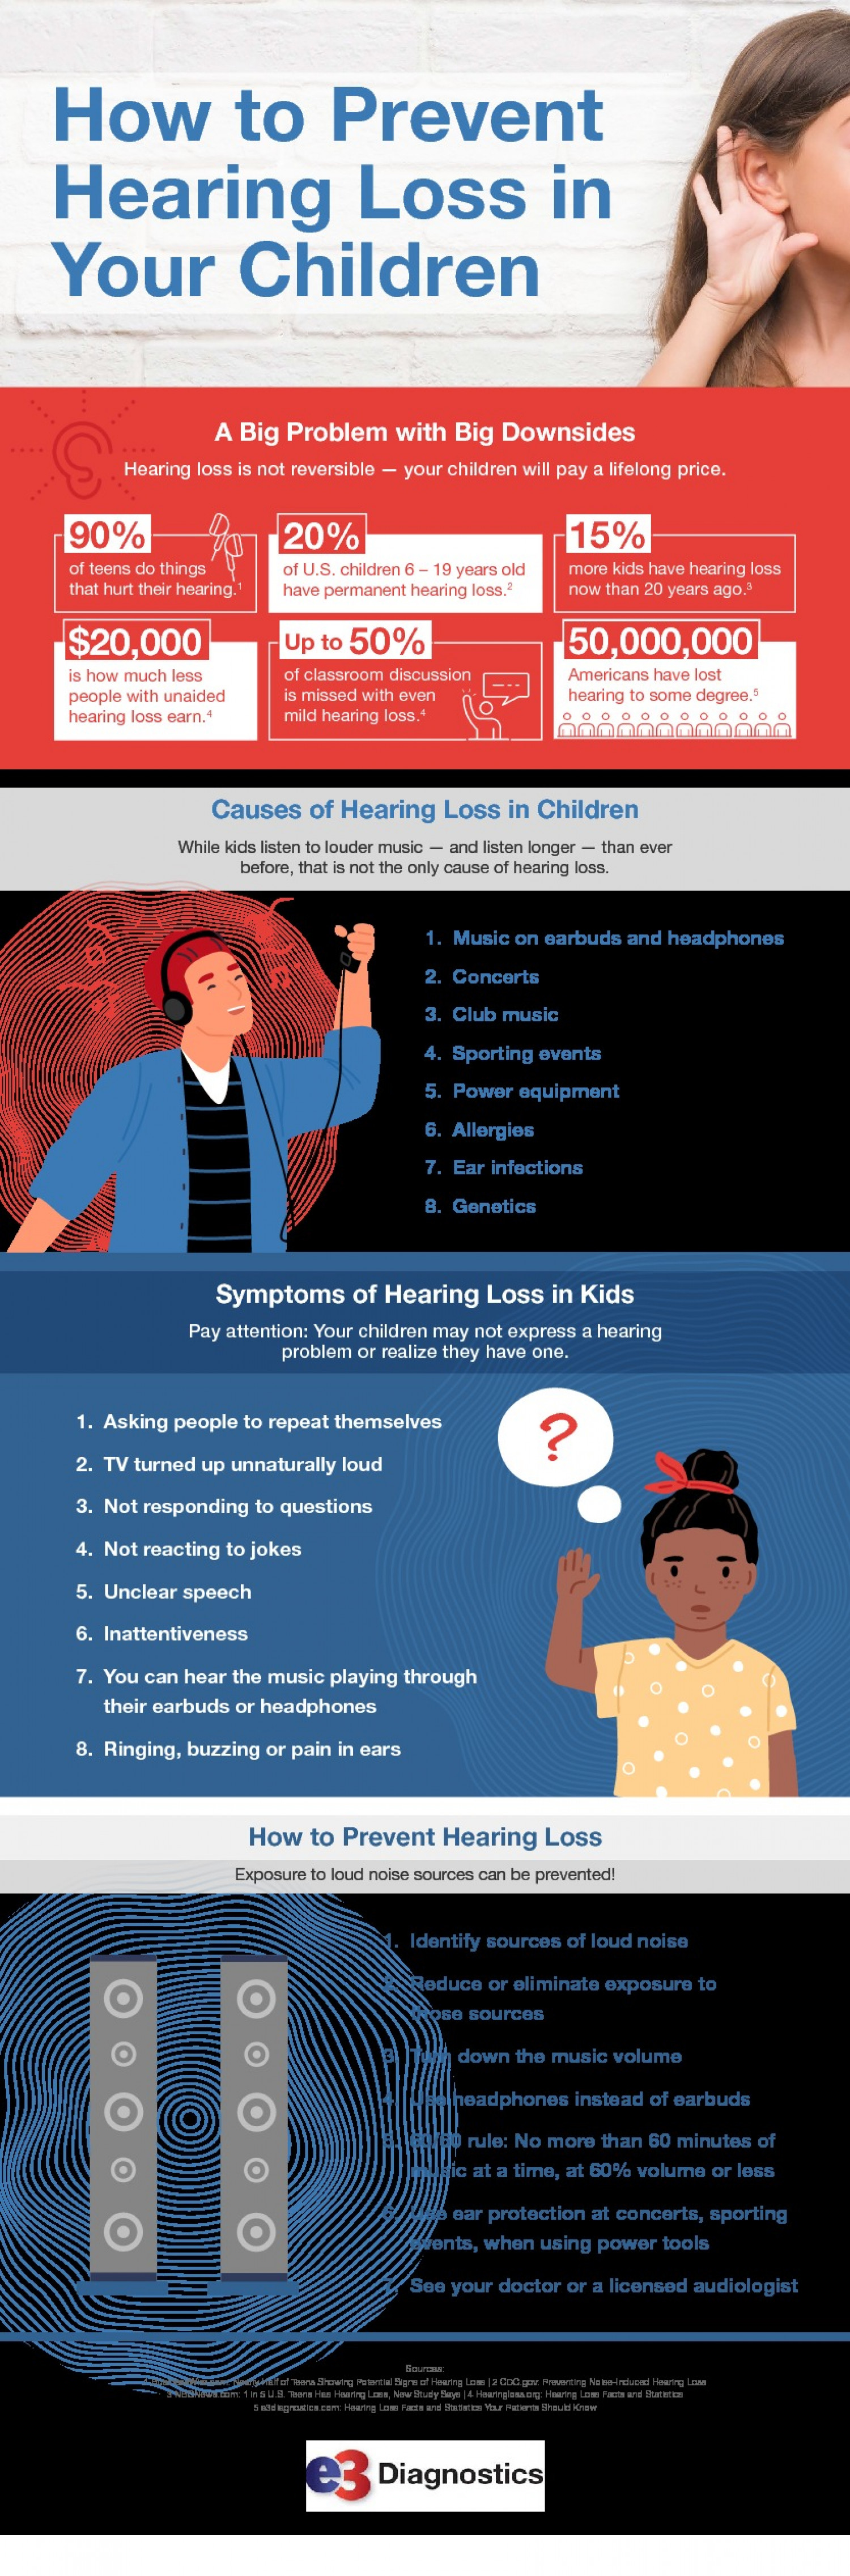 How To Prevent Hearing Loss In Children Infographic